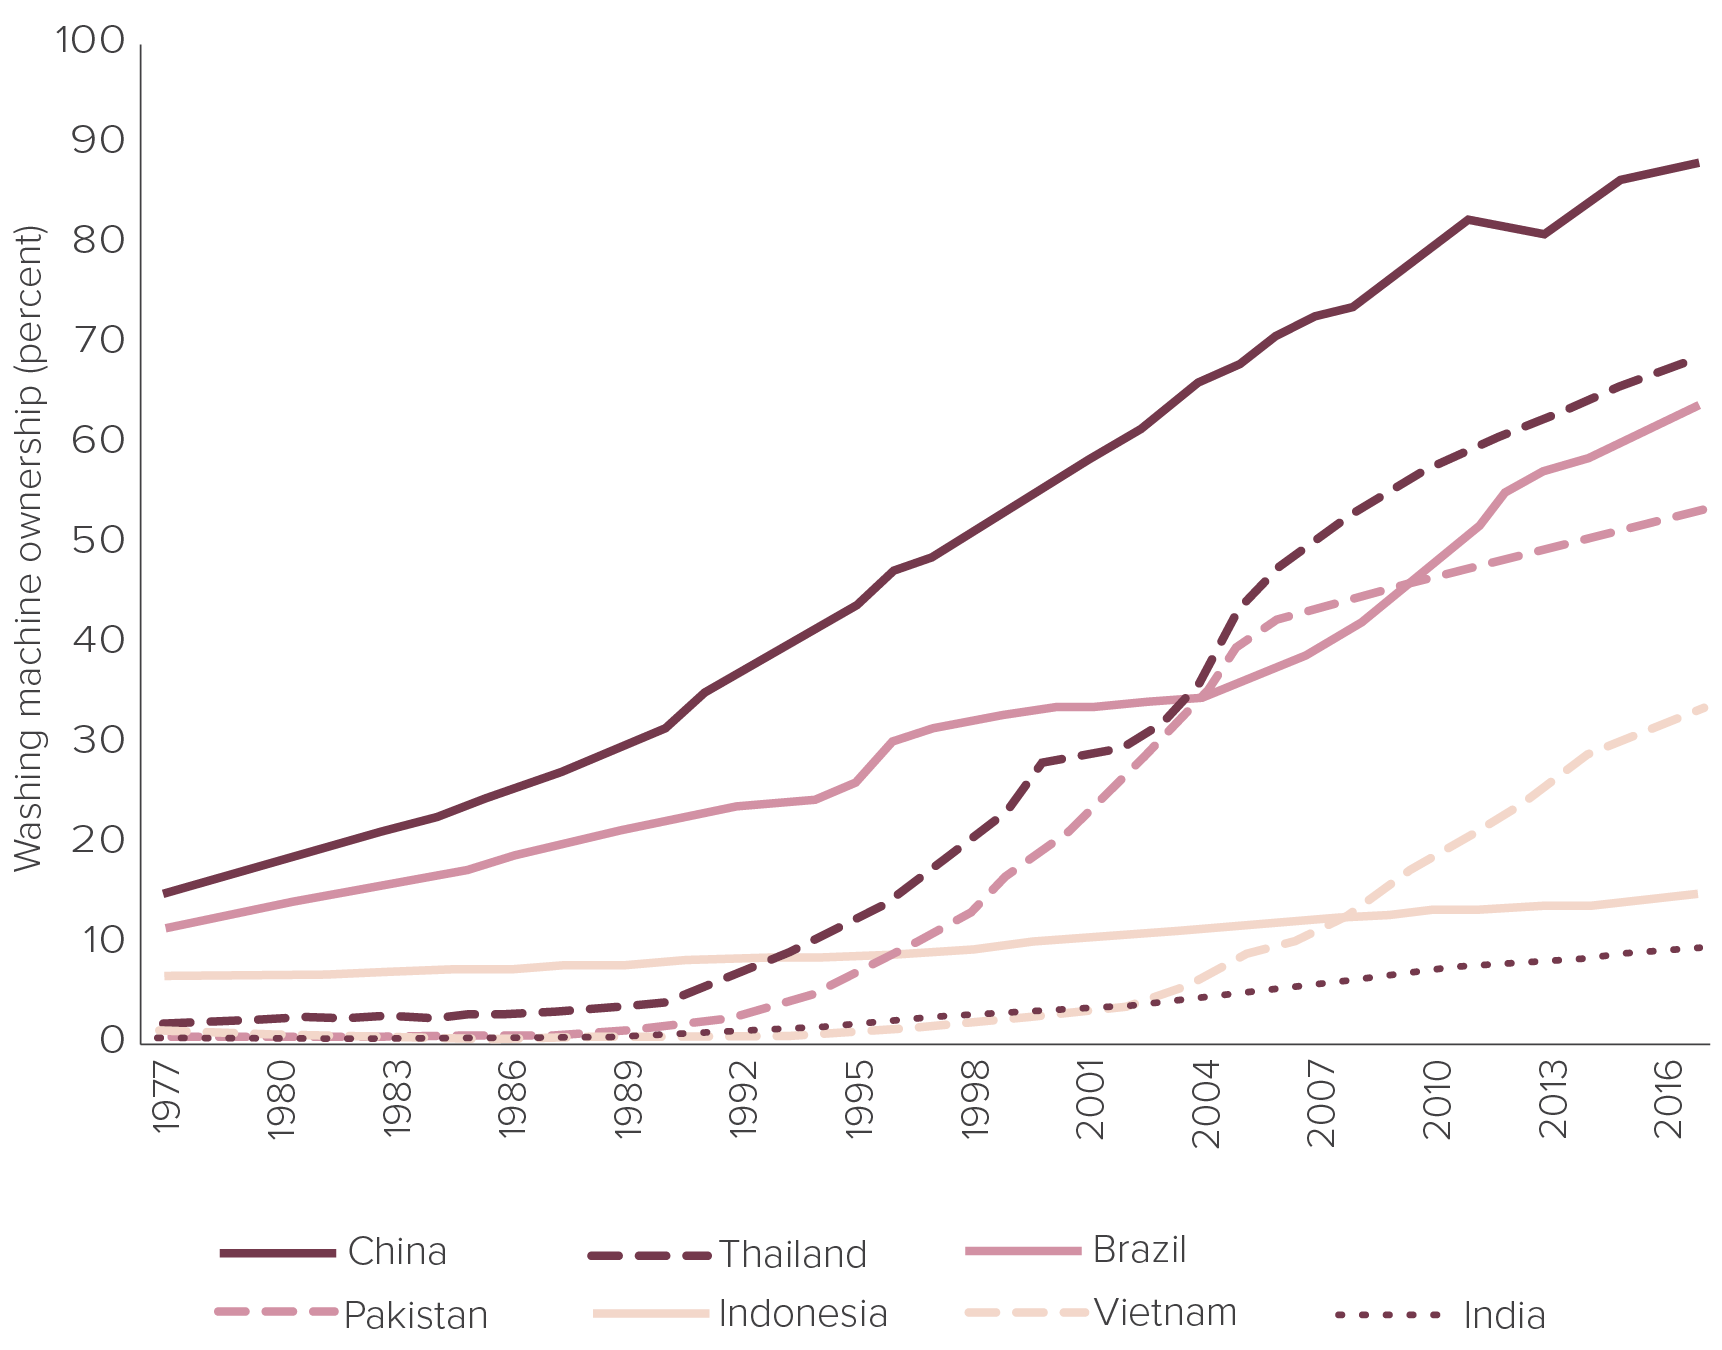 """Figure 6: Washing machine ownership, 1977-2017    Source:  """"Household Possession Rate of Washing Machines,"""" Global Market Information Database, Euromonitor,  http://www.euromonitor.com/home-laundry-appliances ."""